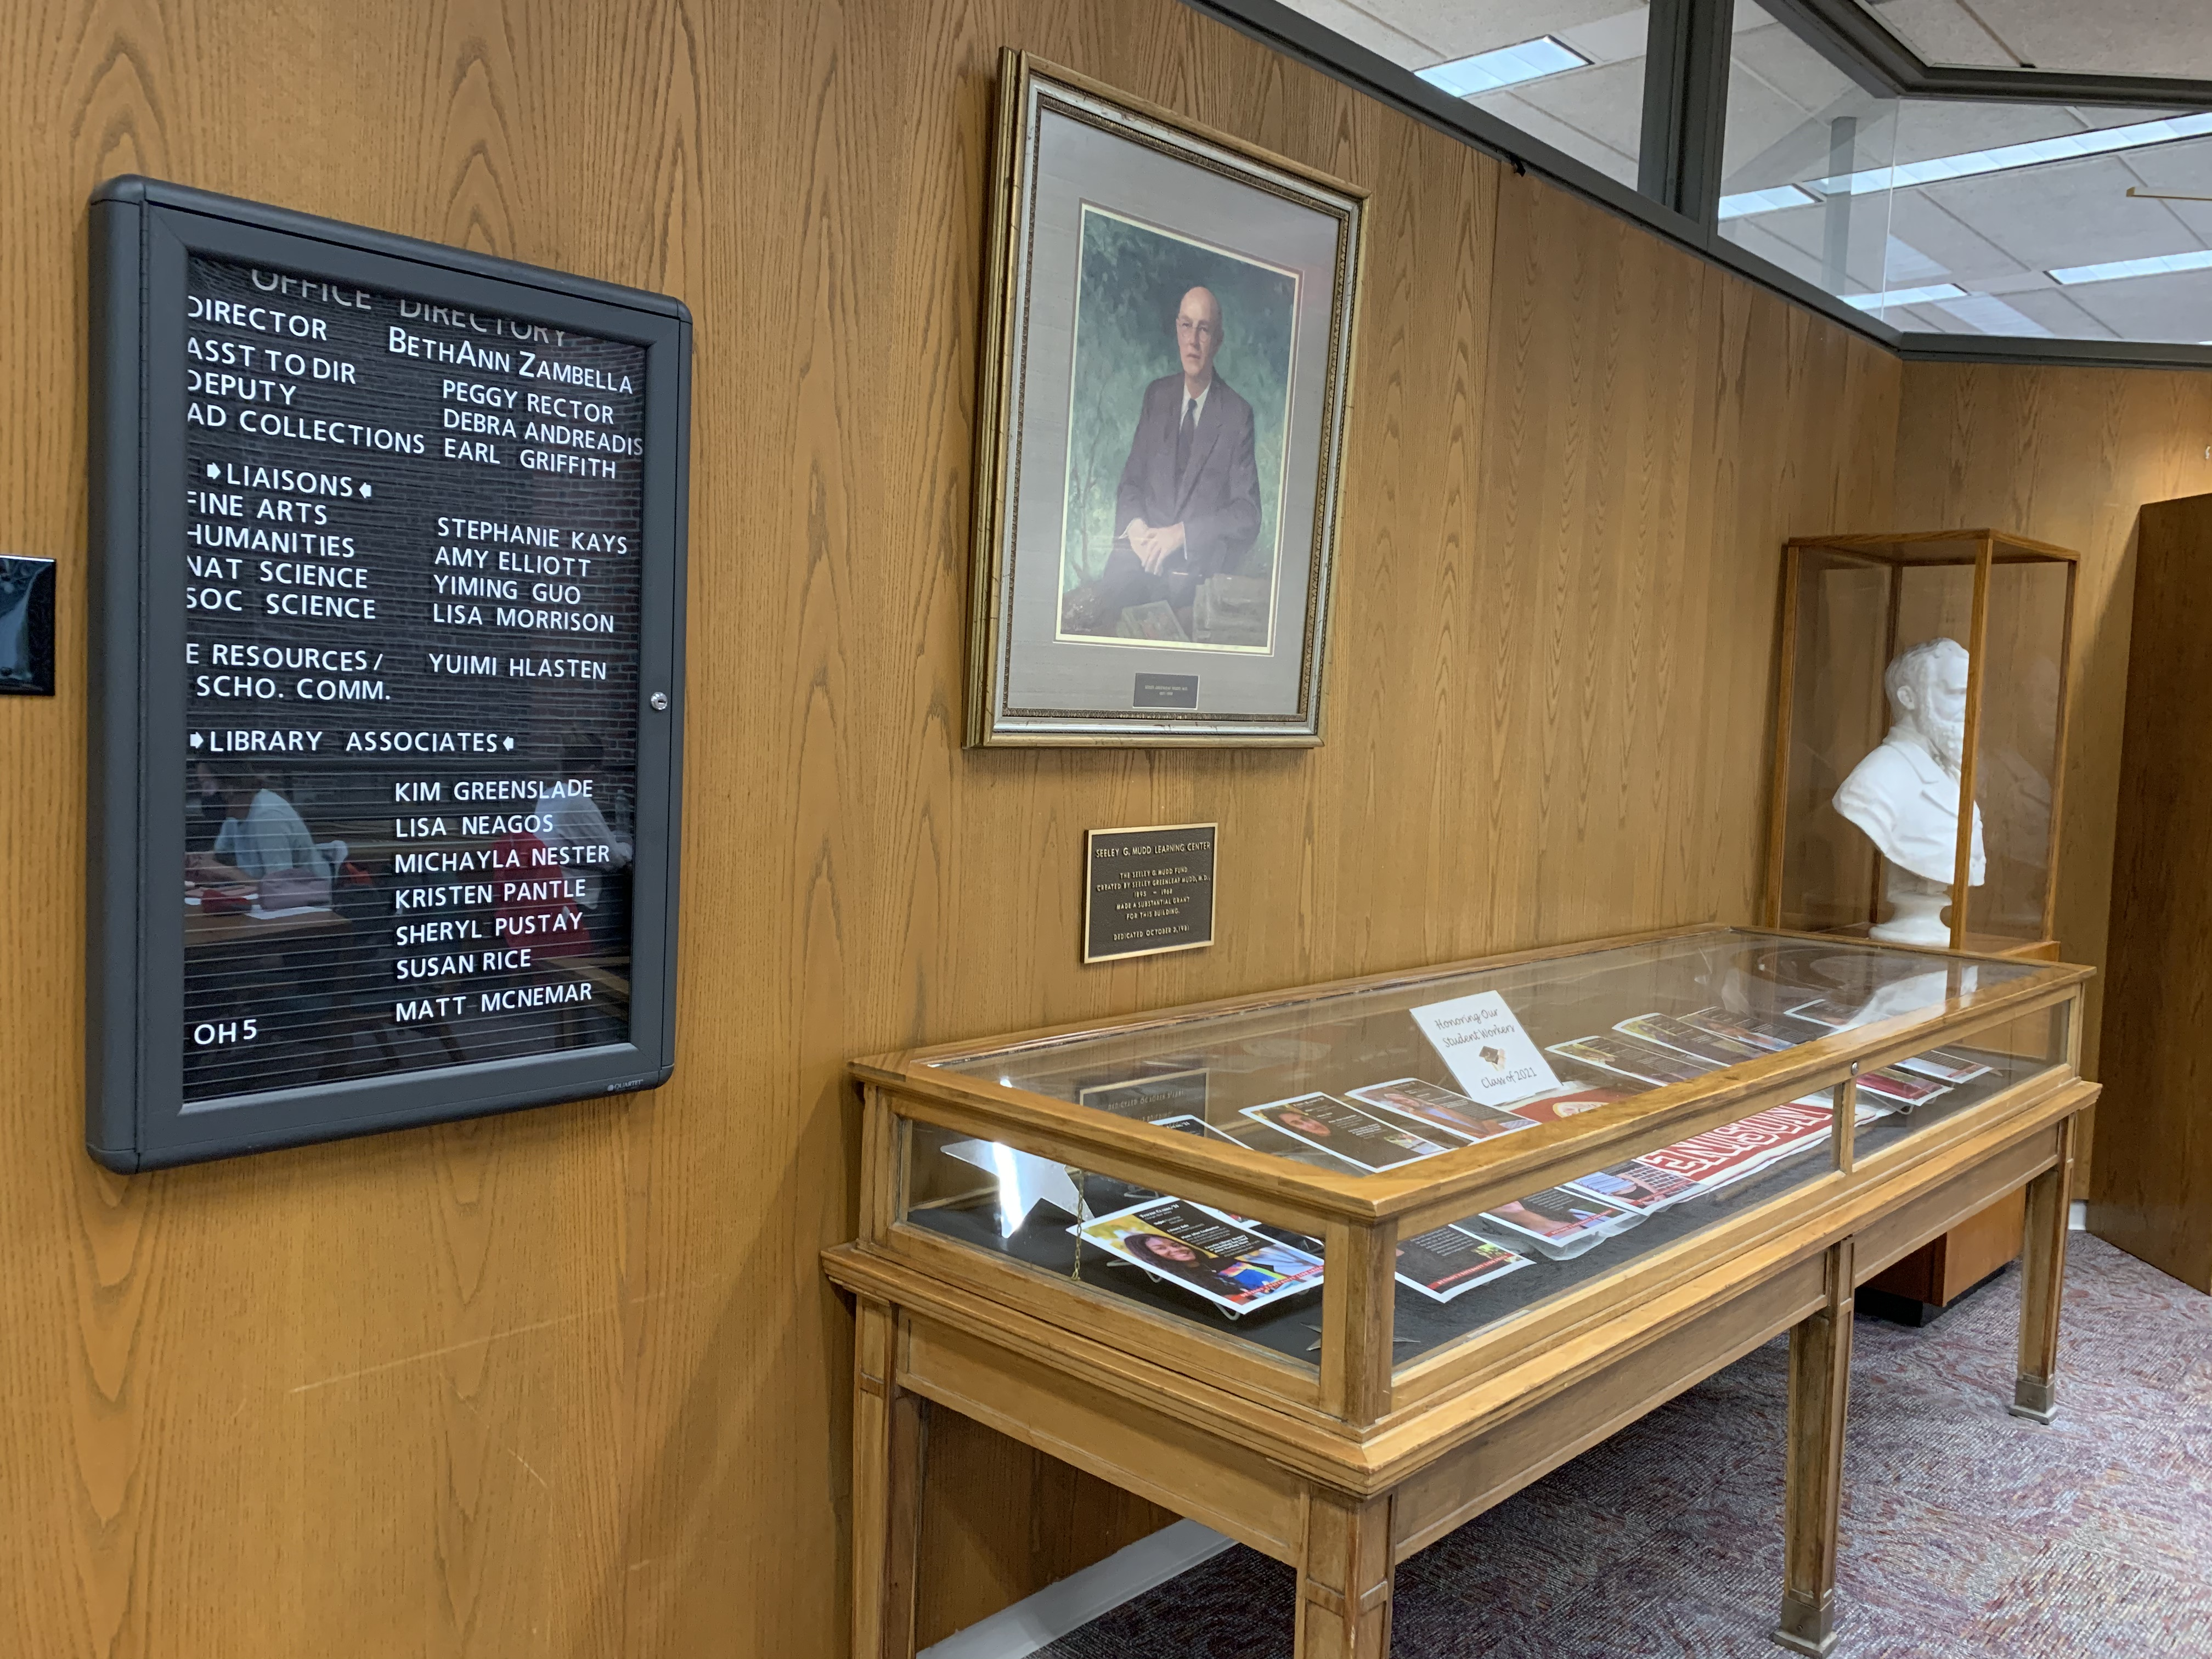 Level 1 staff directory and display case